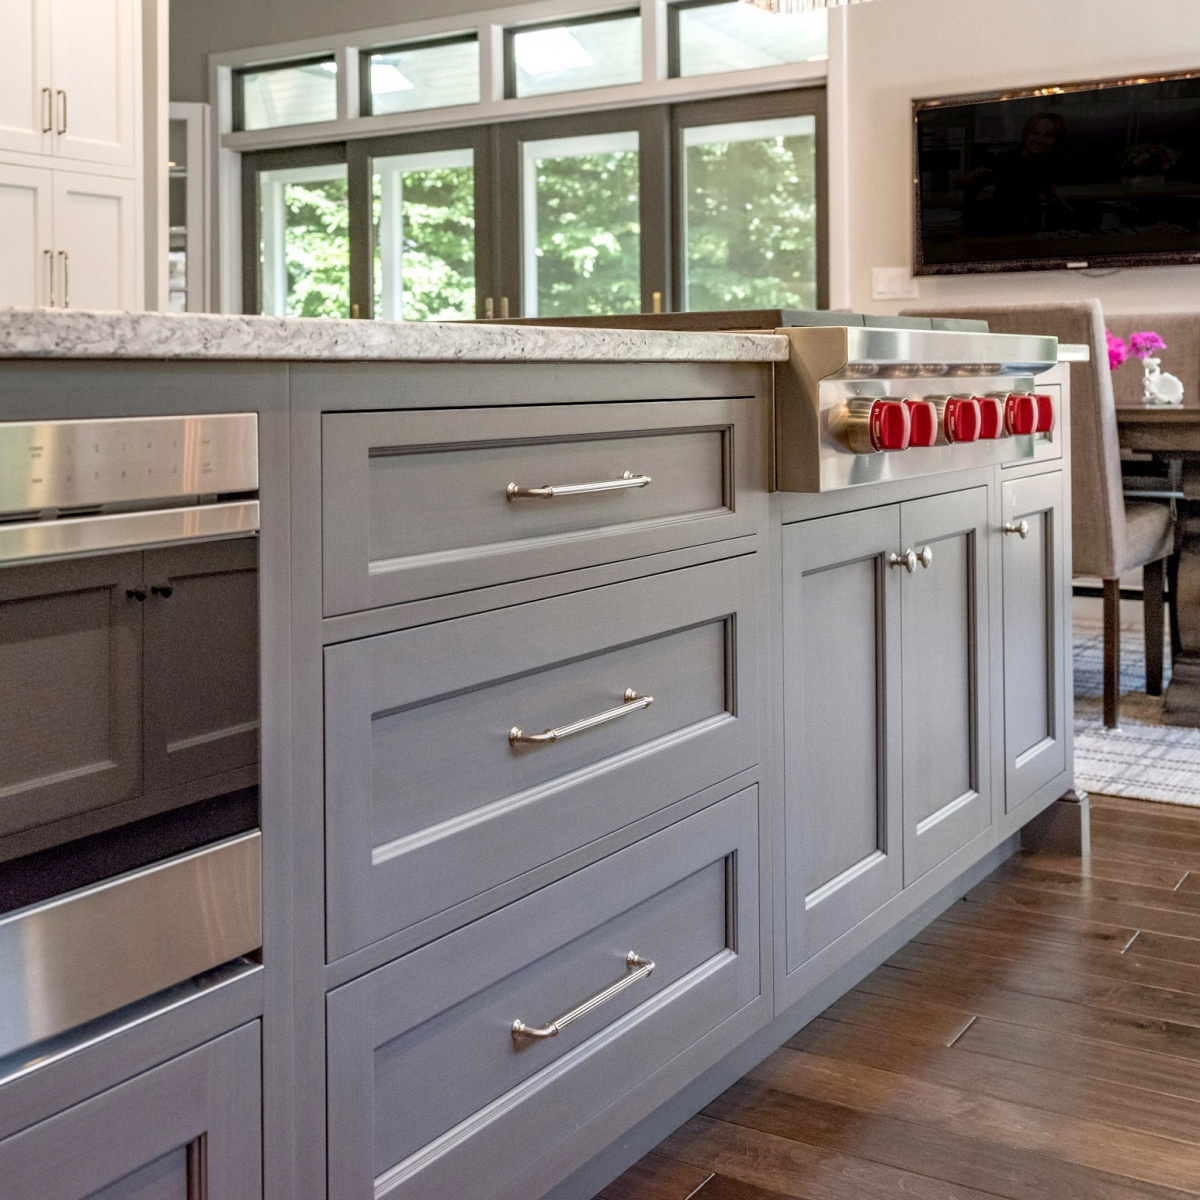 How To Choose The Best Metal Hardware For Your Kitchen The Kitchen Company